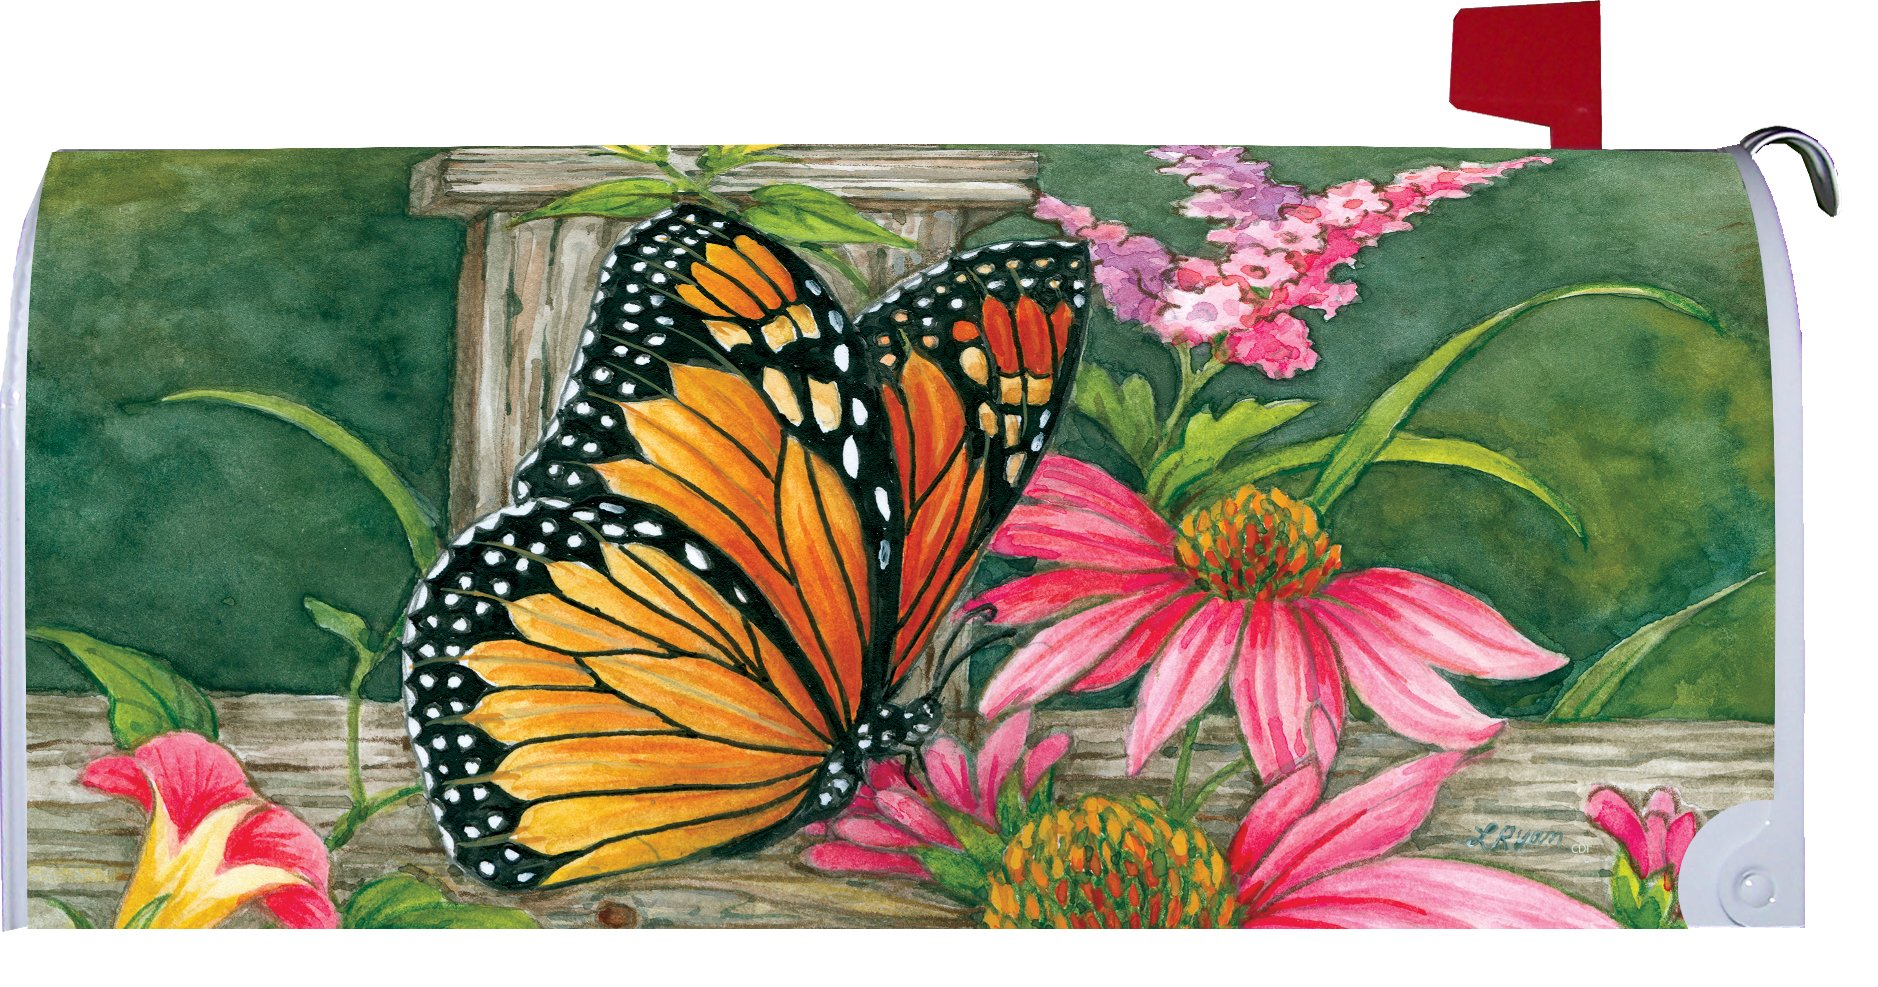 Butterfly Fence - Mailbox Makover Cover - Vinyl witn Magnetic Strips for Steel Standard Rural Mailbox - Copyright, Licensed and Trademarked by Custom Decor Inc.